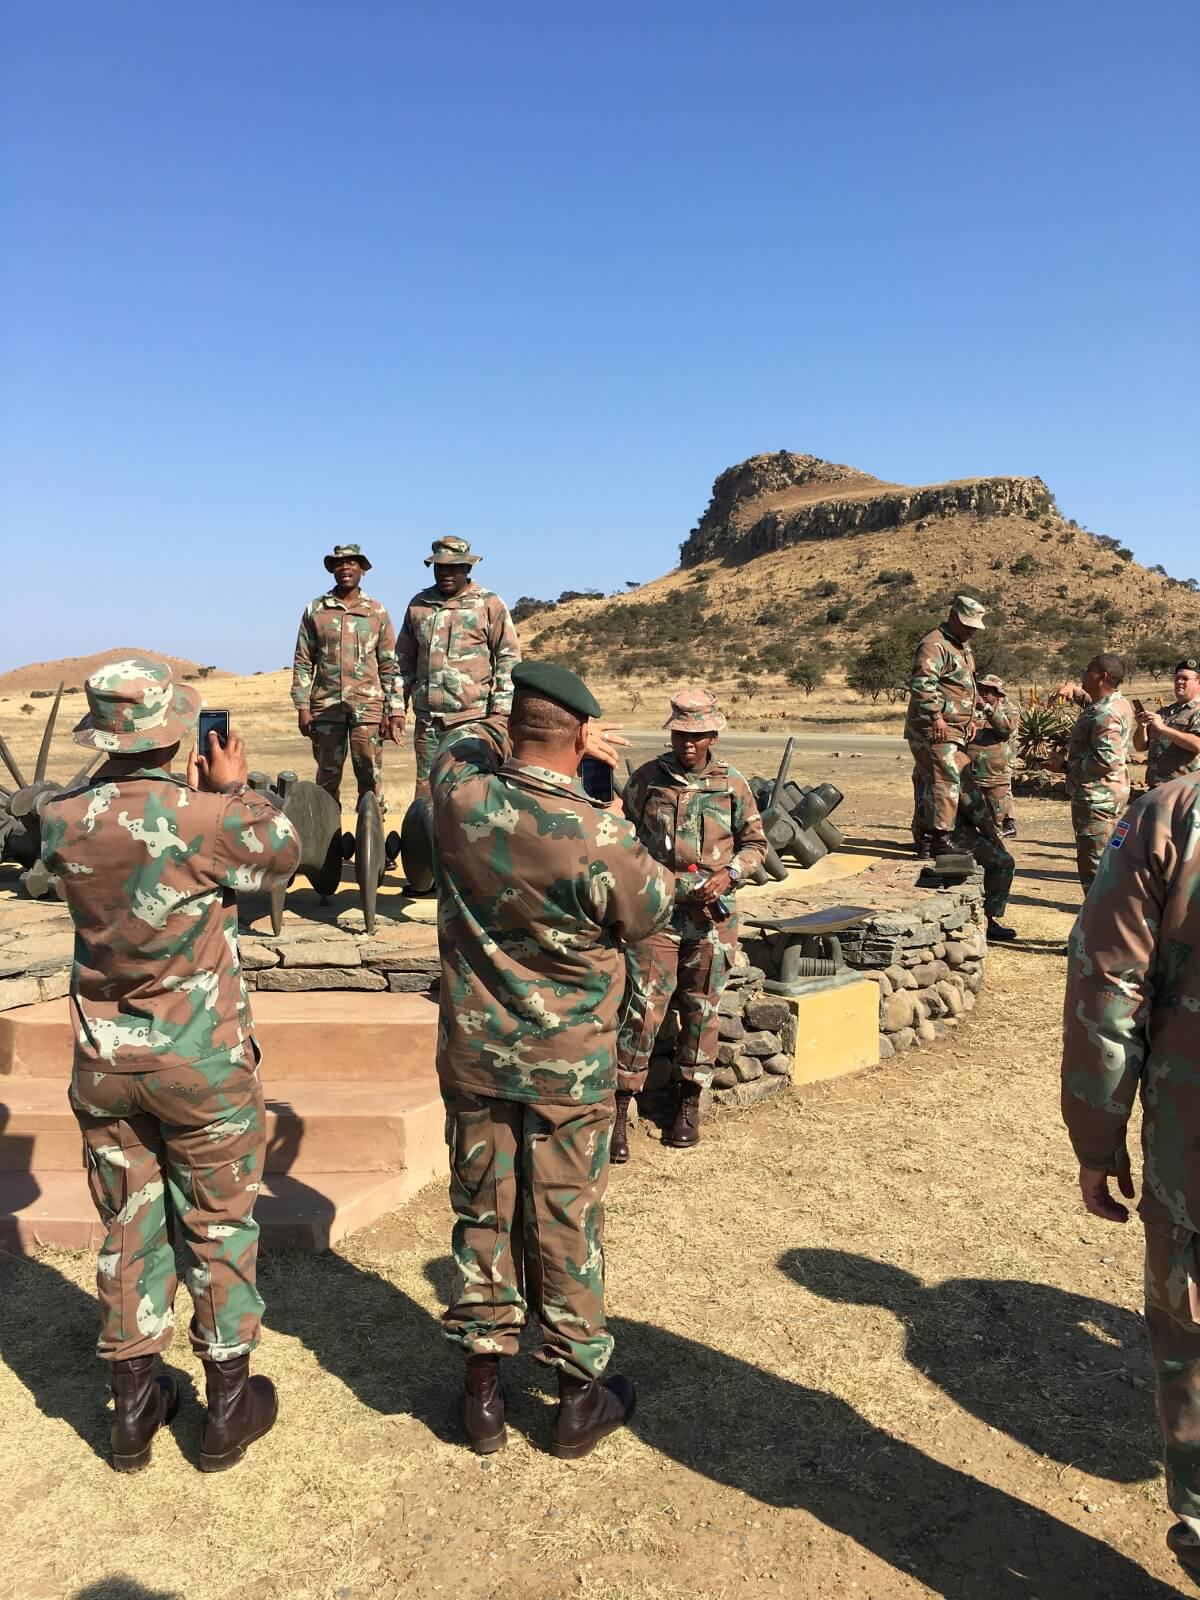 Modern soldiers pay respects at memorial to Zulu slain at Isandhlwana